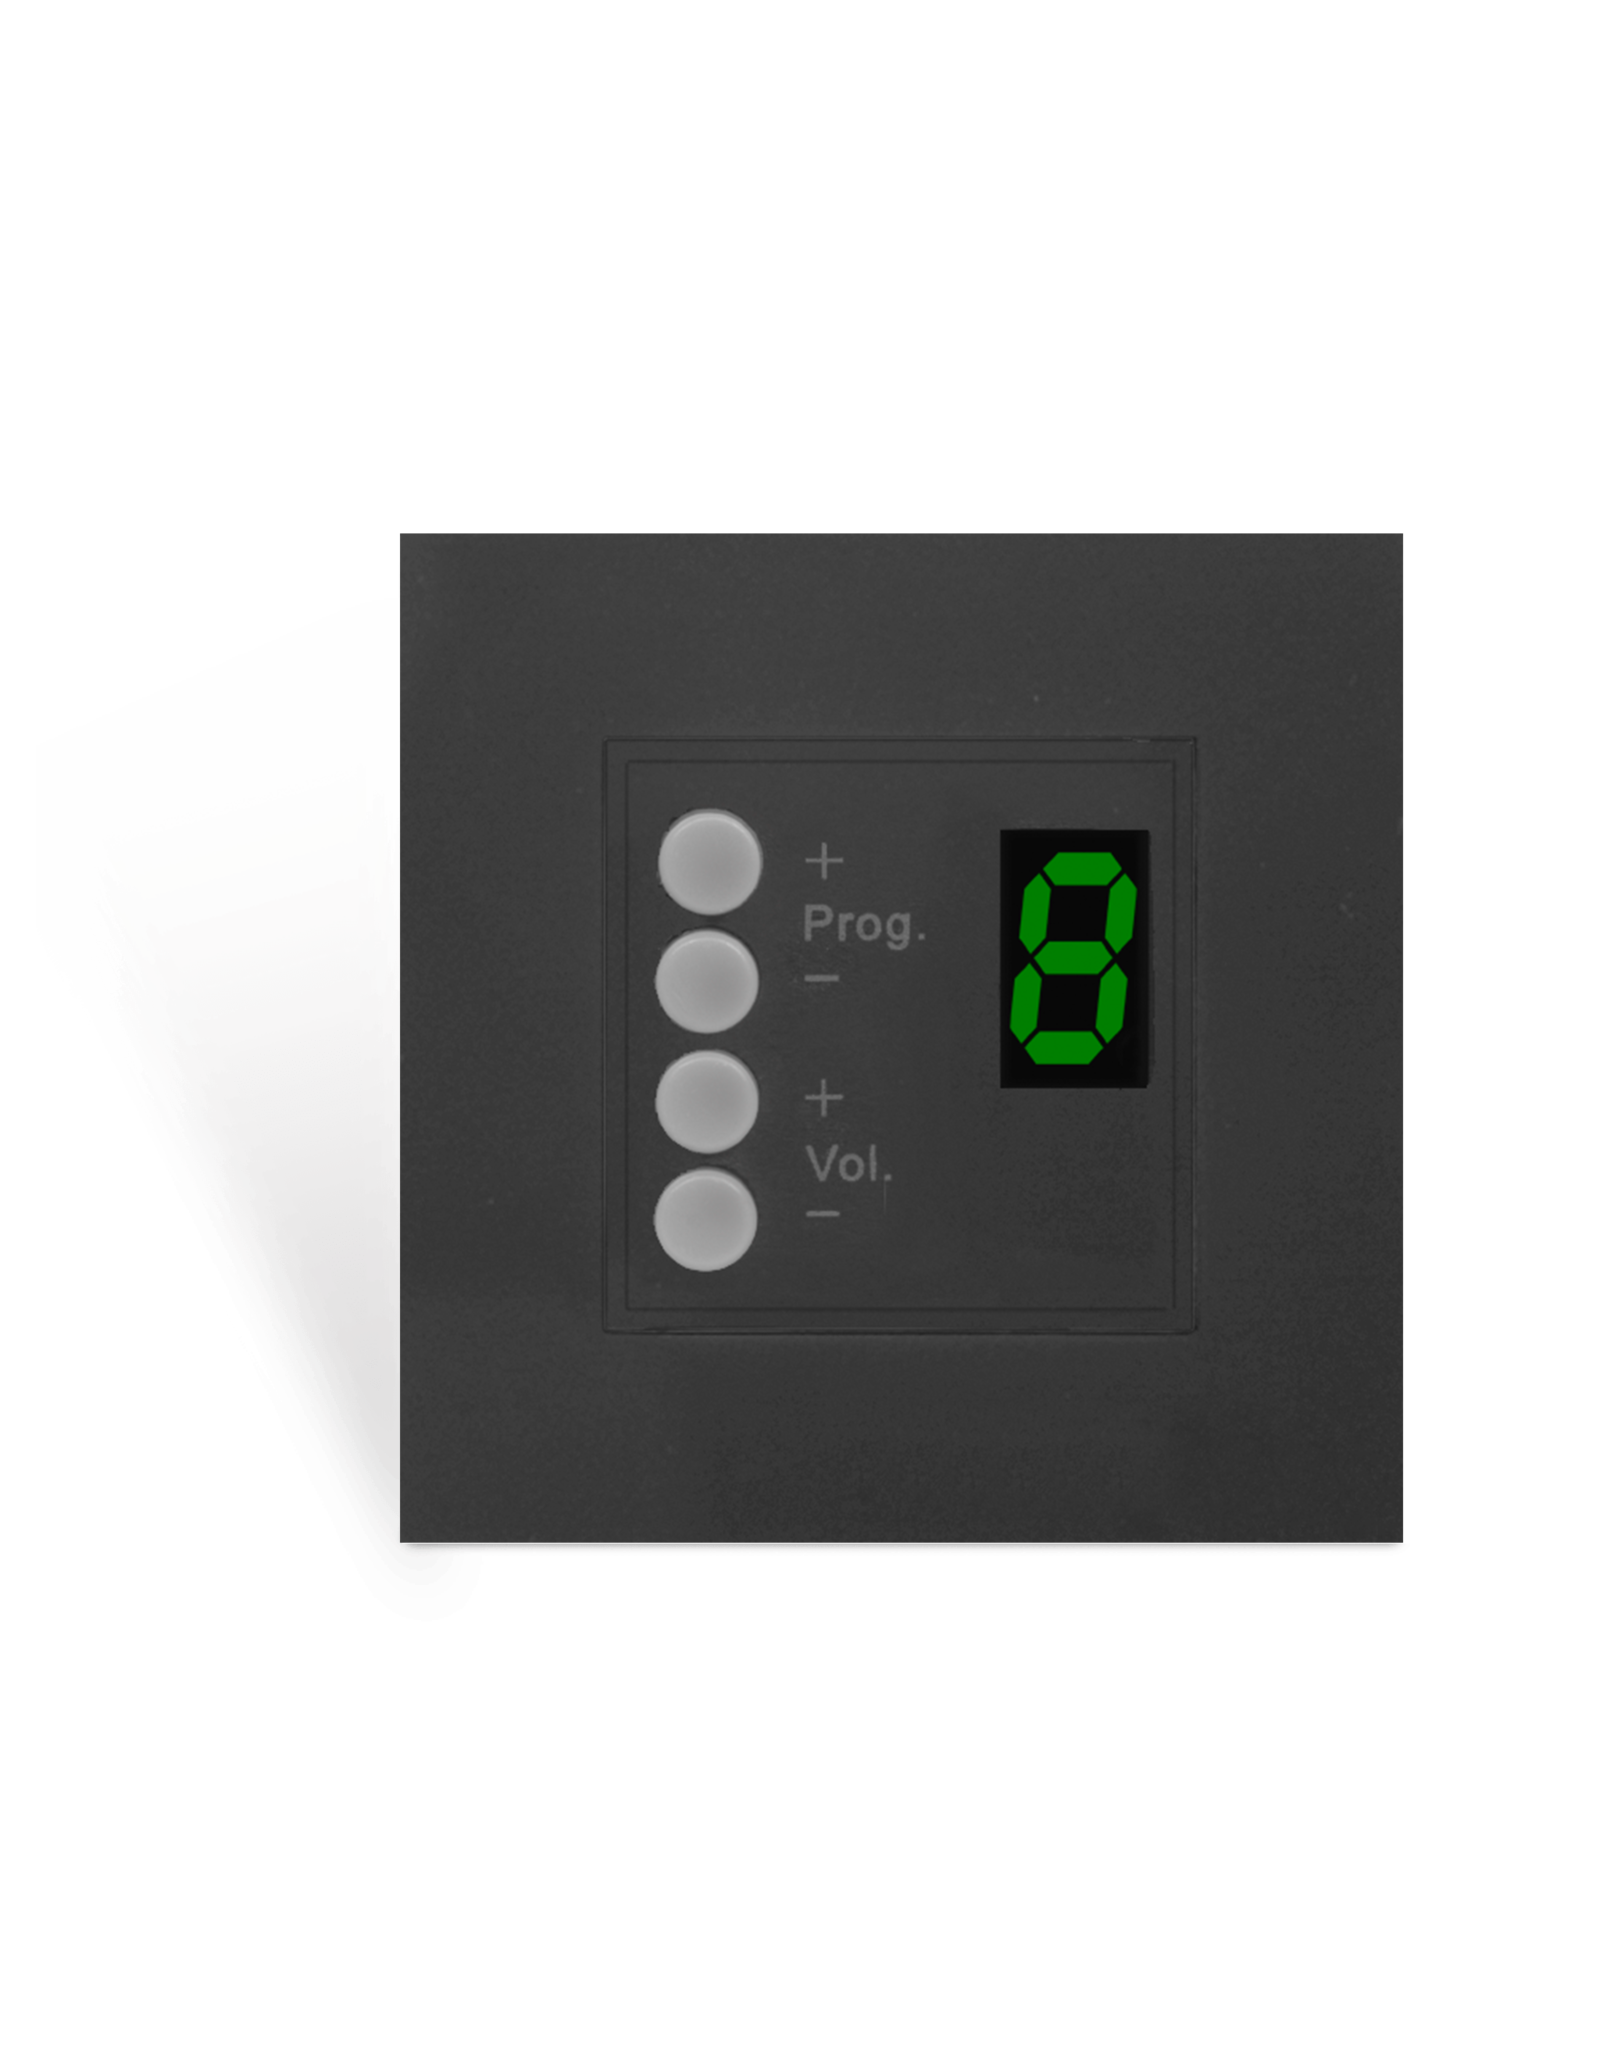 Audac Wall panel controller 8 zones for 45x45 standard Black version